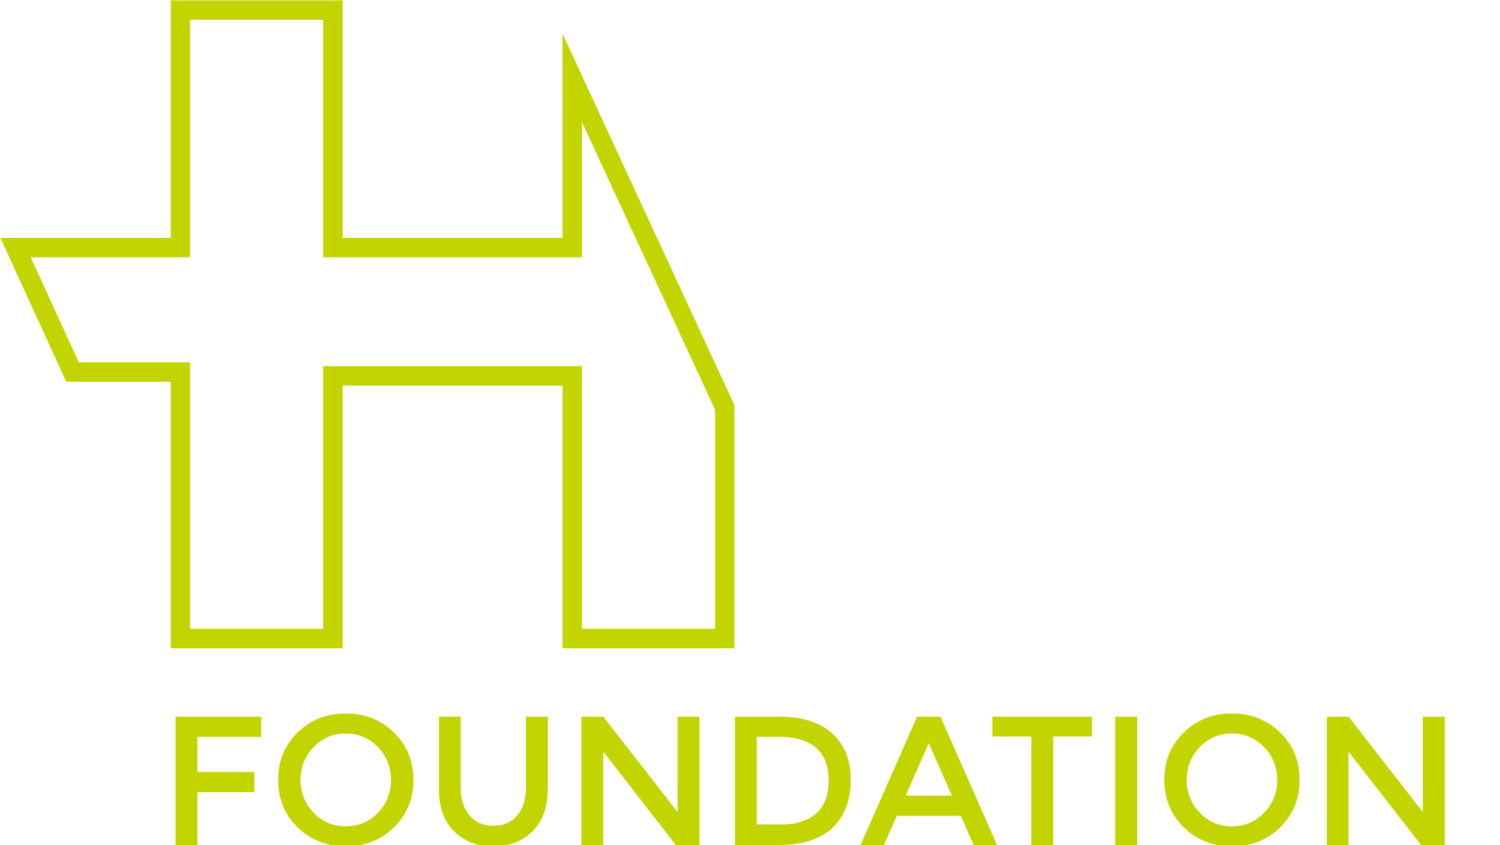 HV3 Foundation